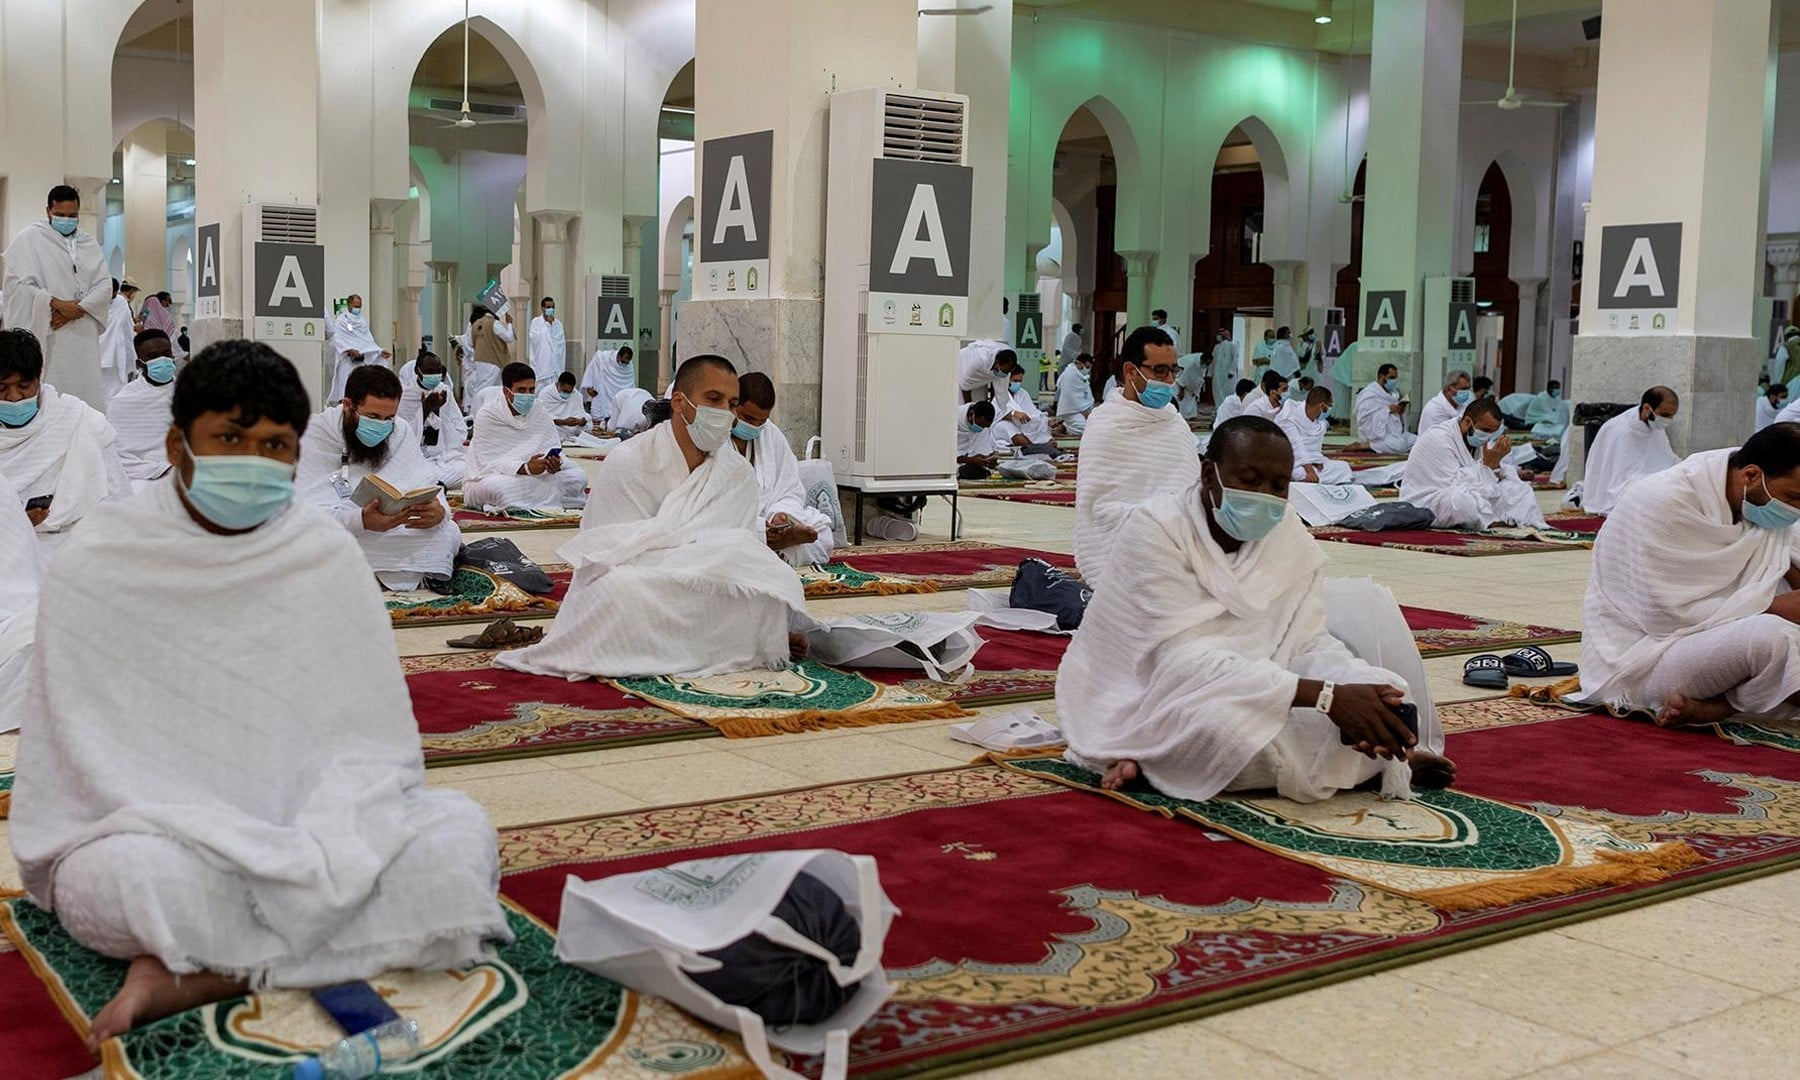 Muslim pilgrims maintain social distancing as they pray inside Namira Mosque in Arafat to mark Haj's most important day on July 30. — Reuters